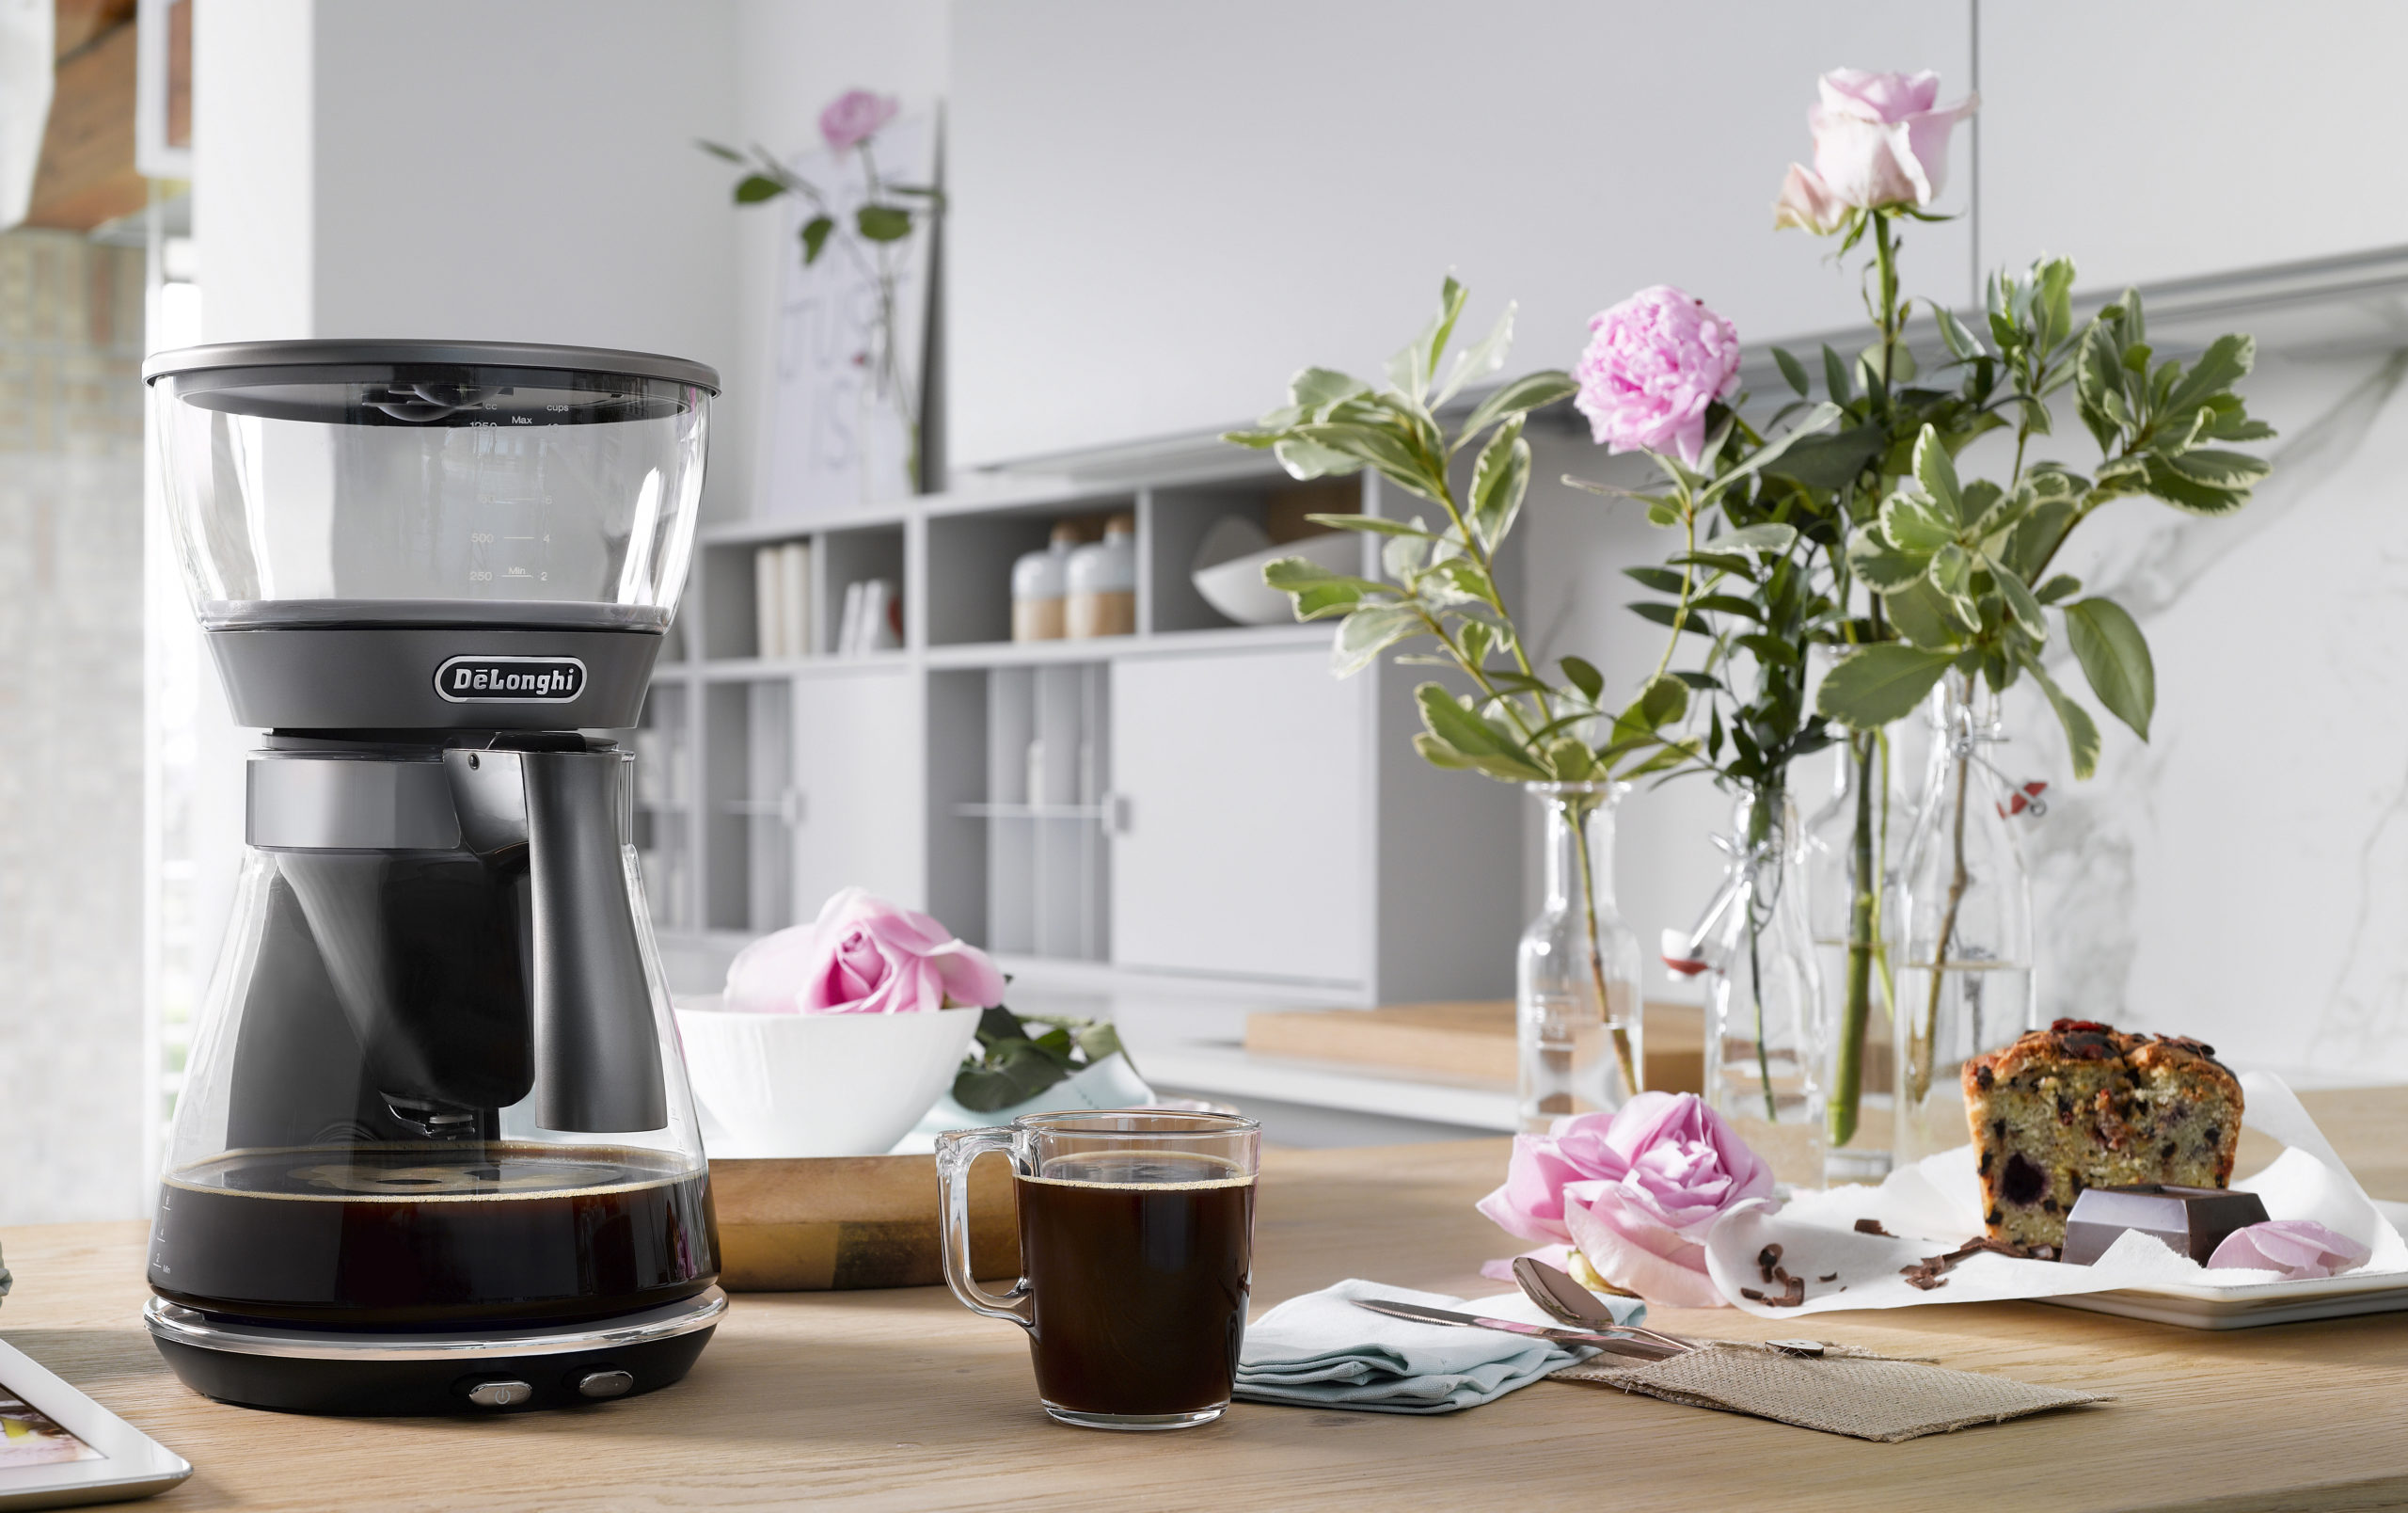 De'Longhi coffee drip machine placed on a table